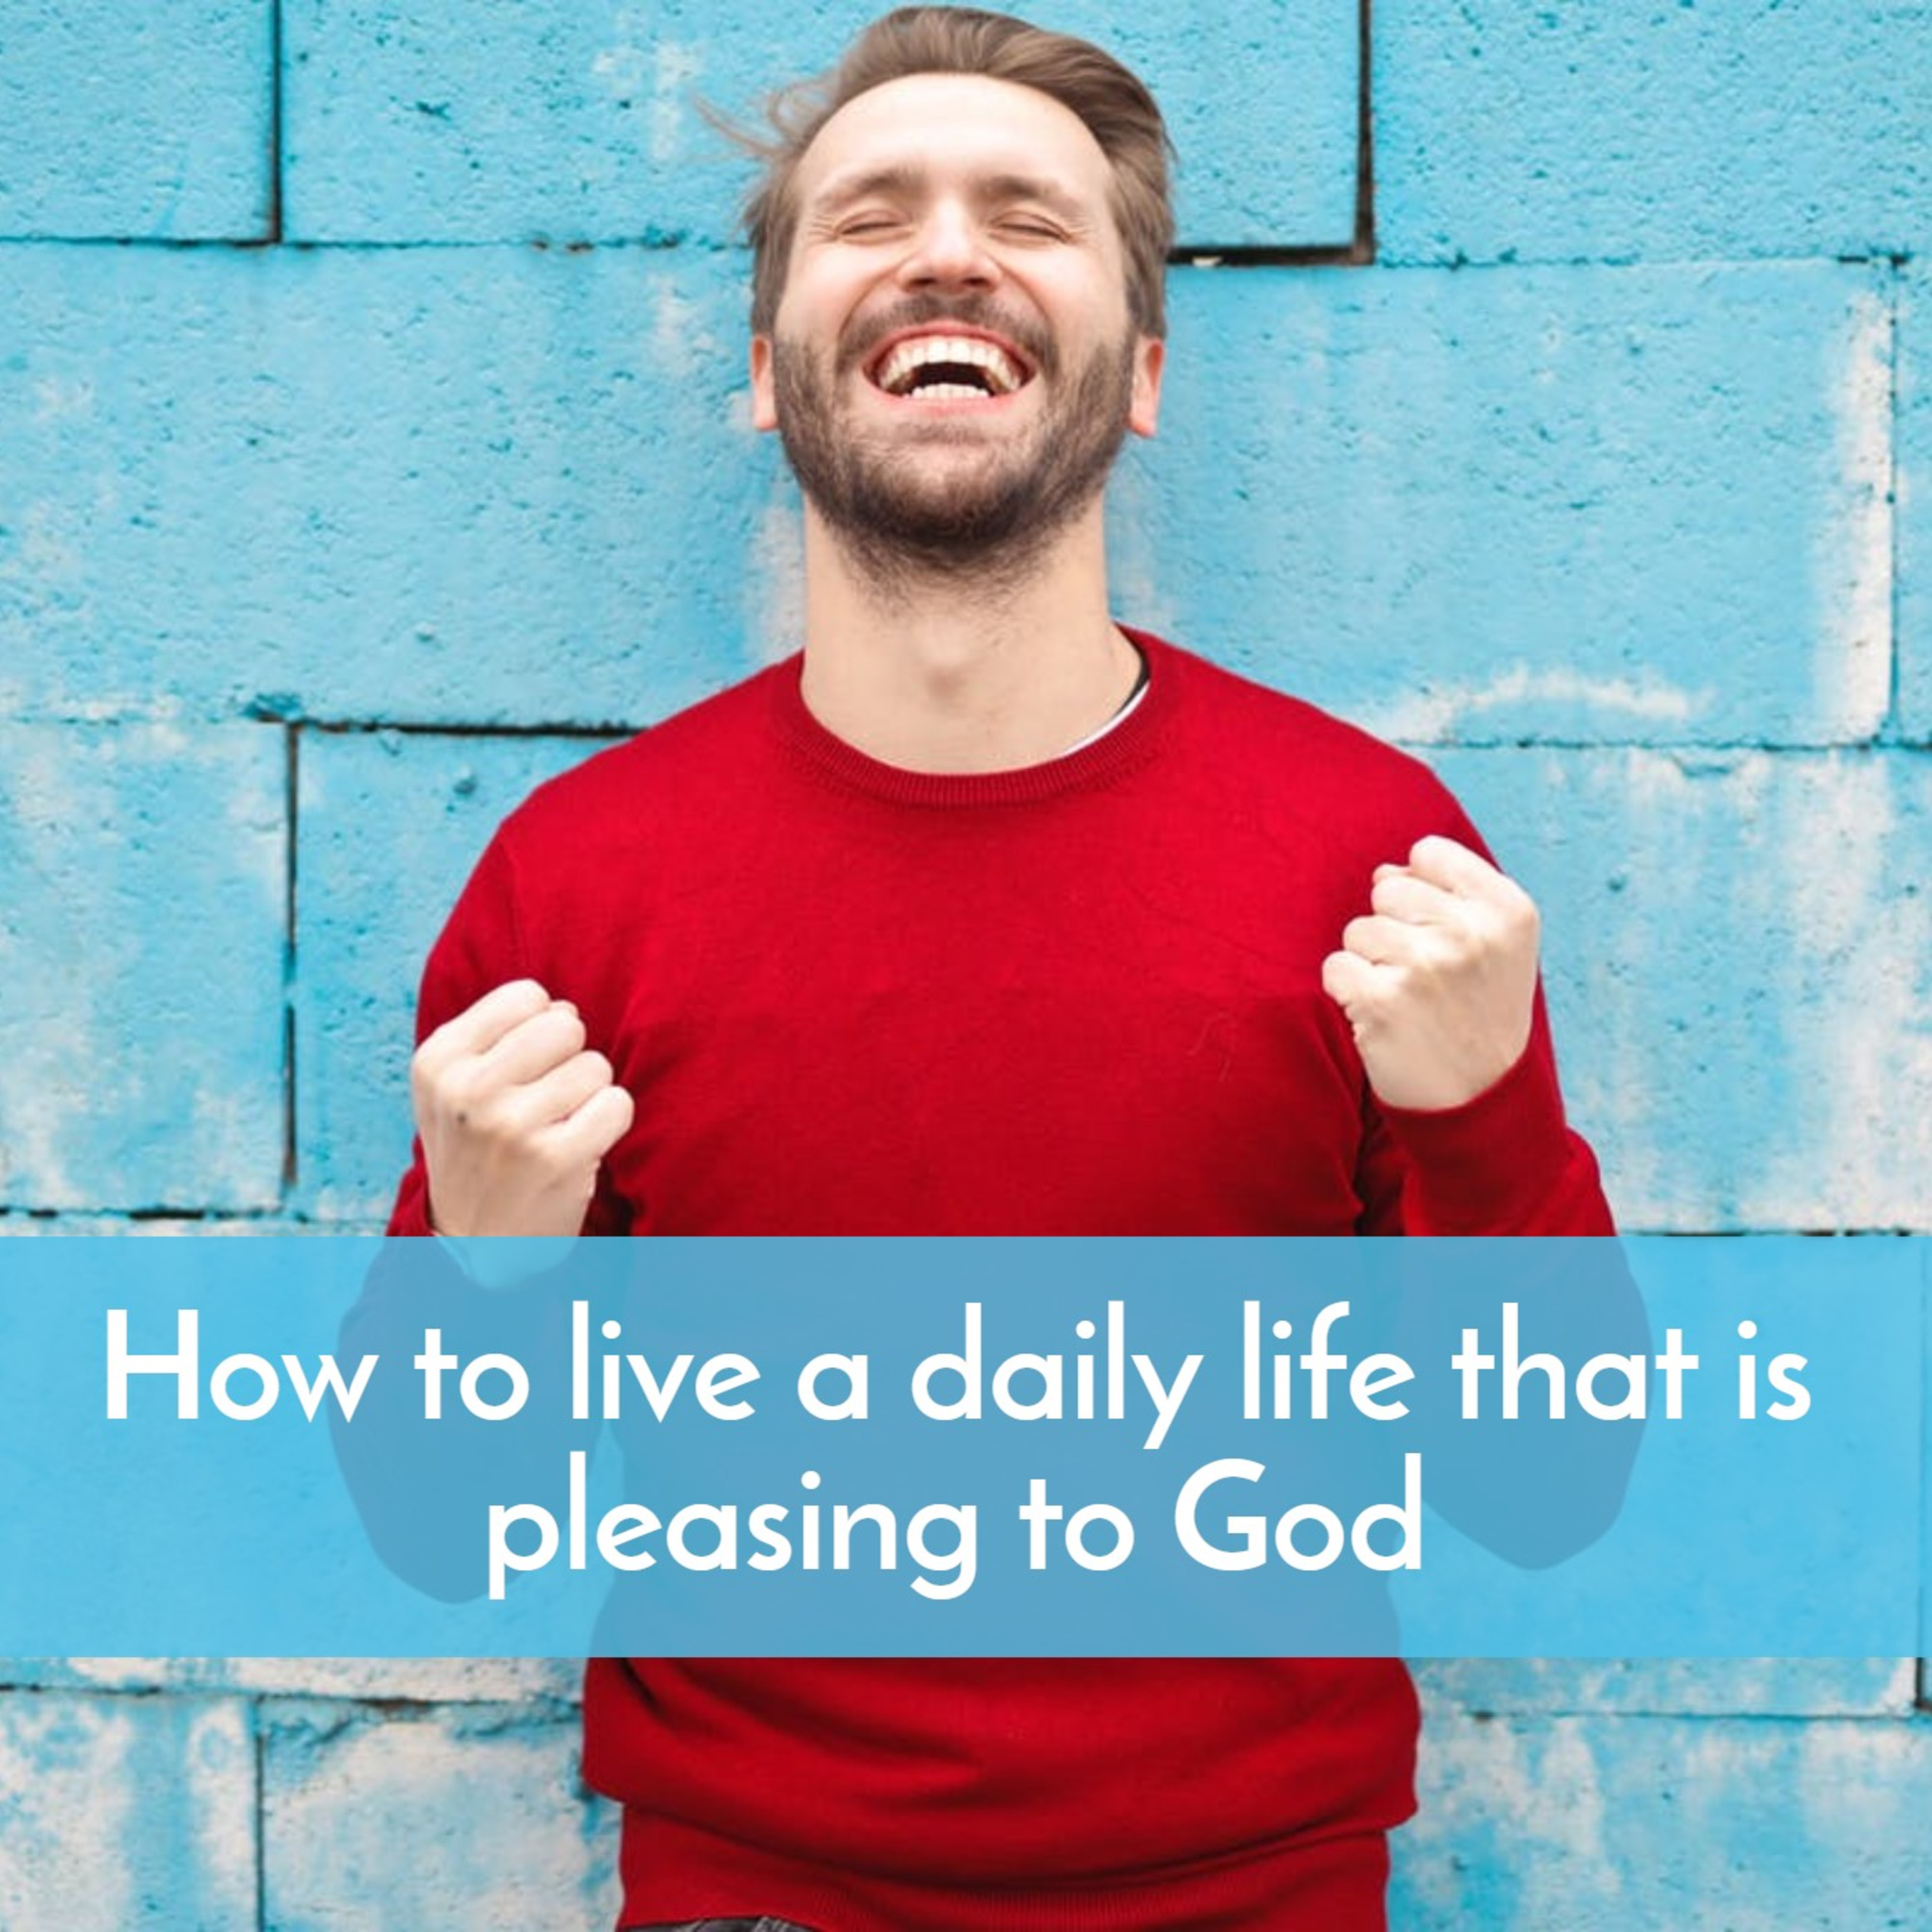 #42 How to daily live a life pleasing to God—what all the theology about dying to sin really means